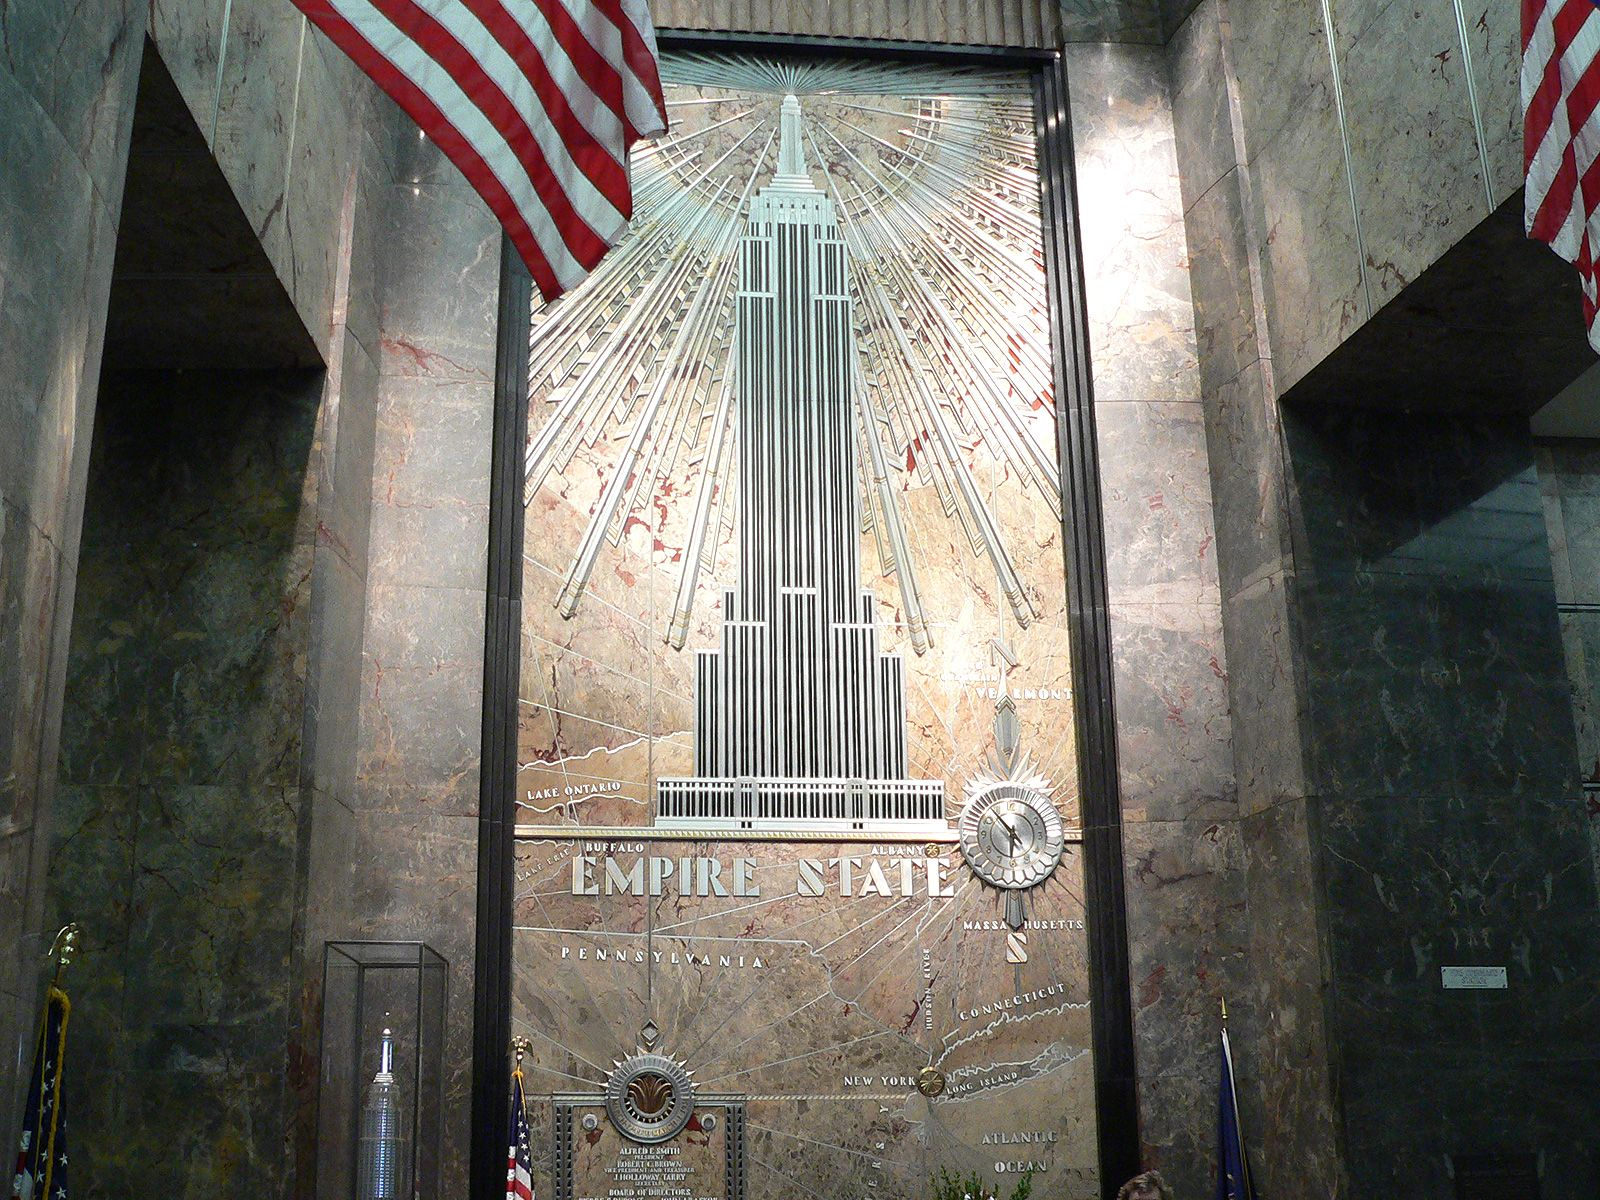 Empire State Building Art Deco Architecture Art Deco Art Deco Design